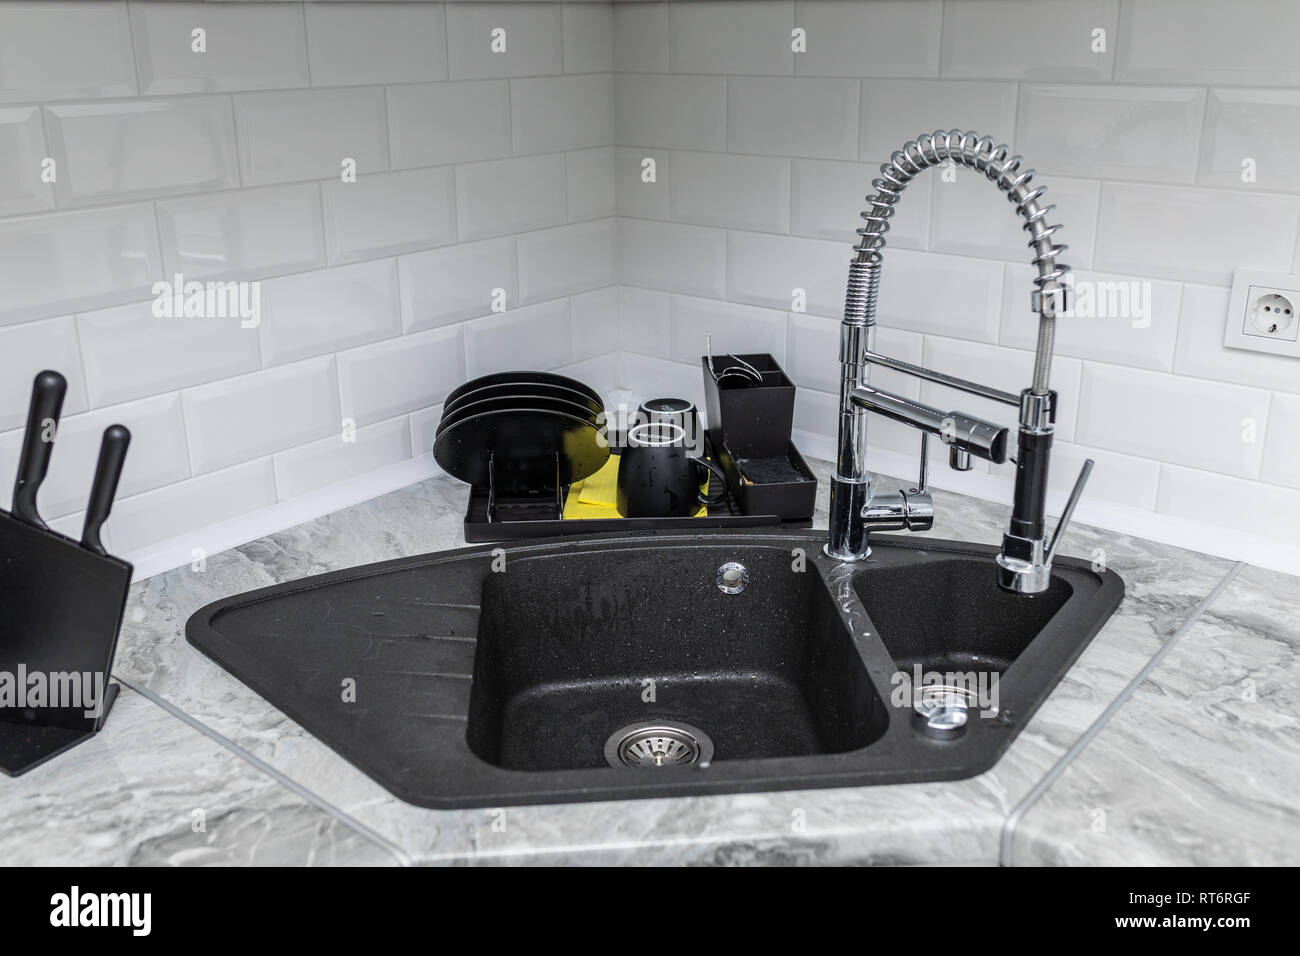 Black Kitchen Sink And Tap Water In The Kitchen The Interior Of The Kitchen Room Of The Apartment Built In Appliances Kitchen Appliance Stock Photo Alamy